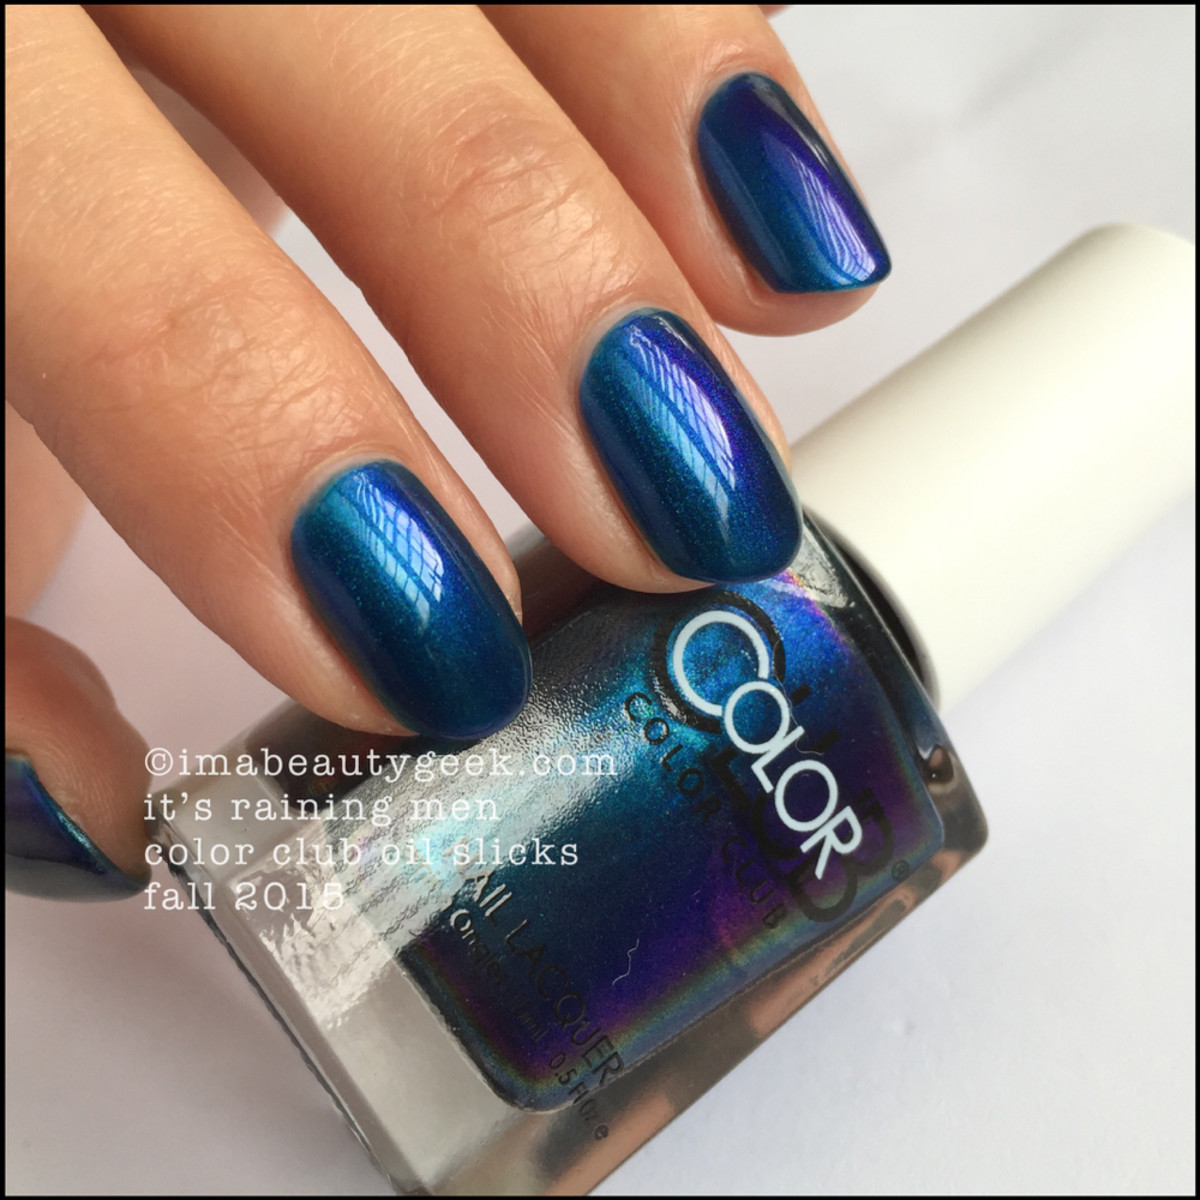 Color Club Oil Slicks Collection _Its Raining Men Swatches_1